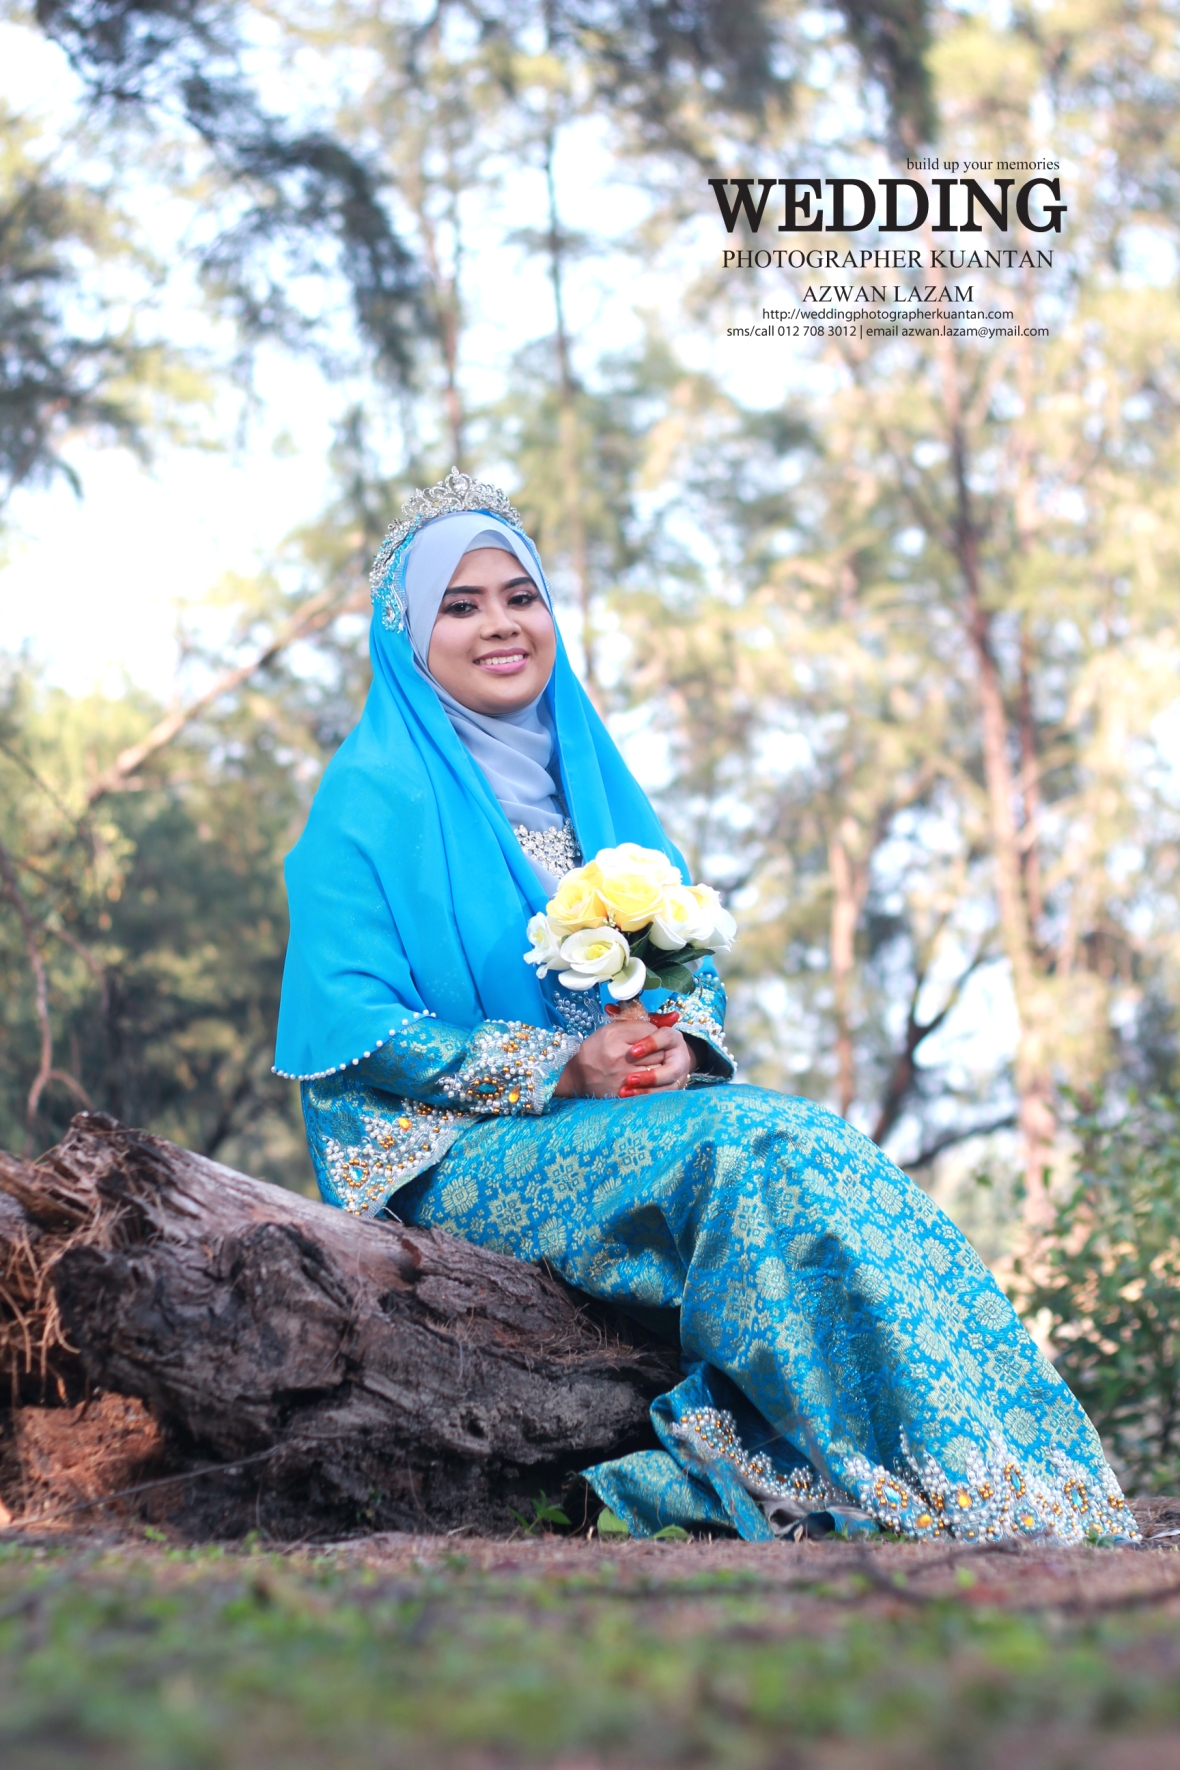 wedding-photogrpher-kuantan-3